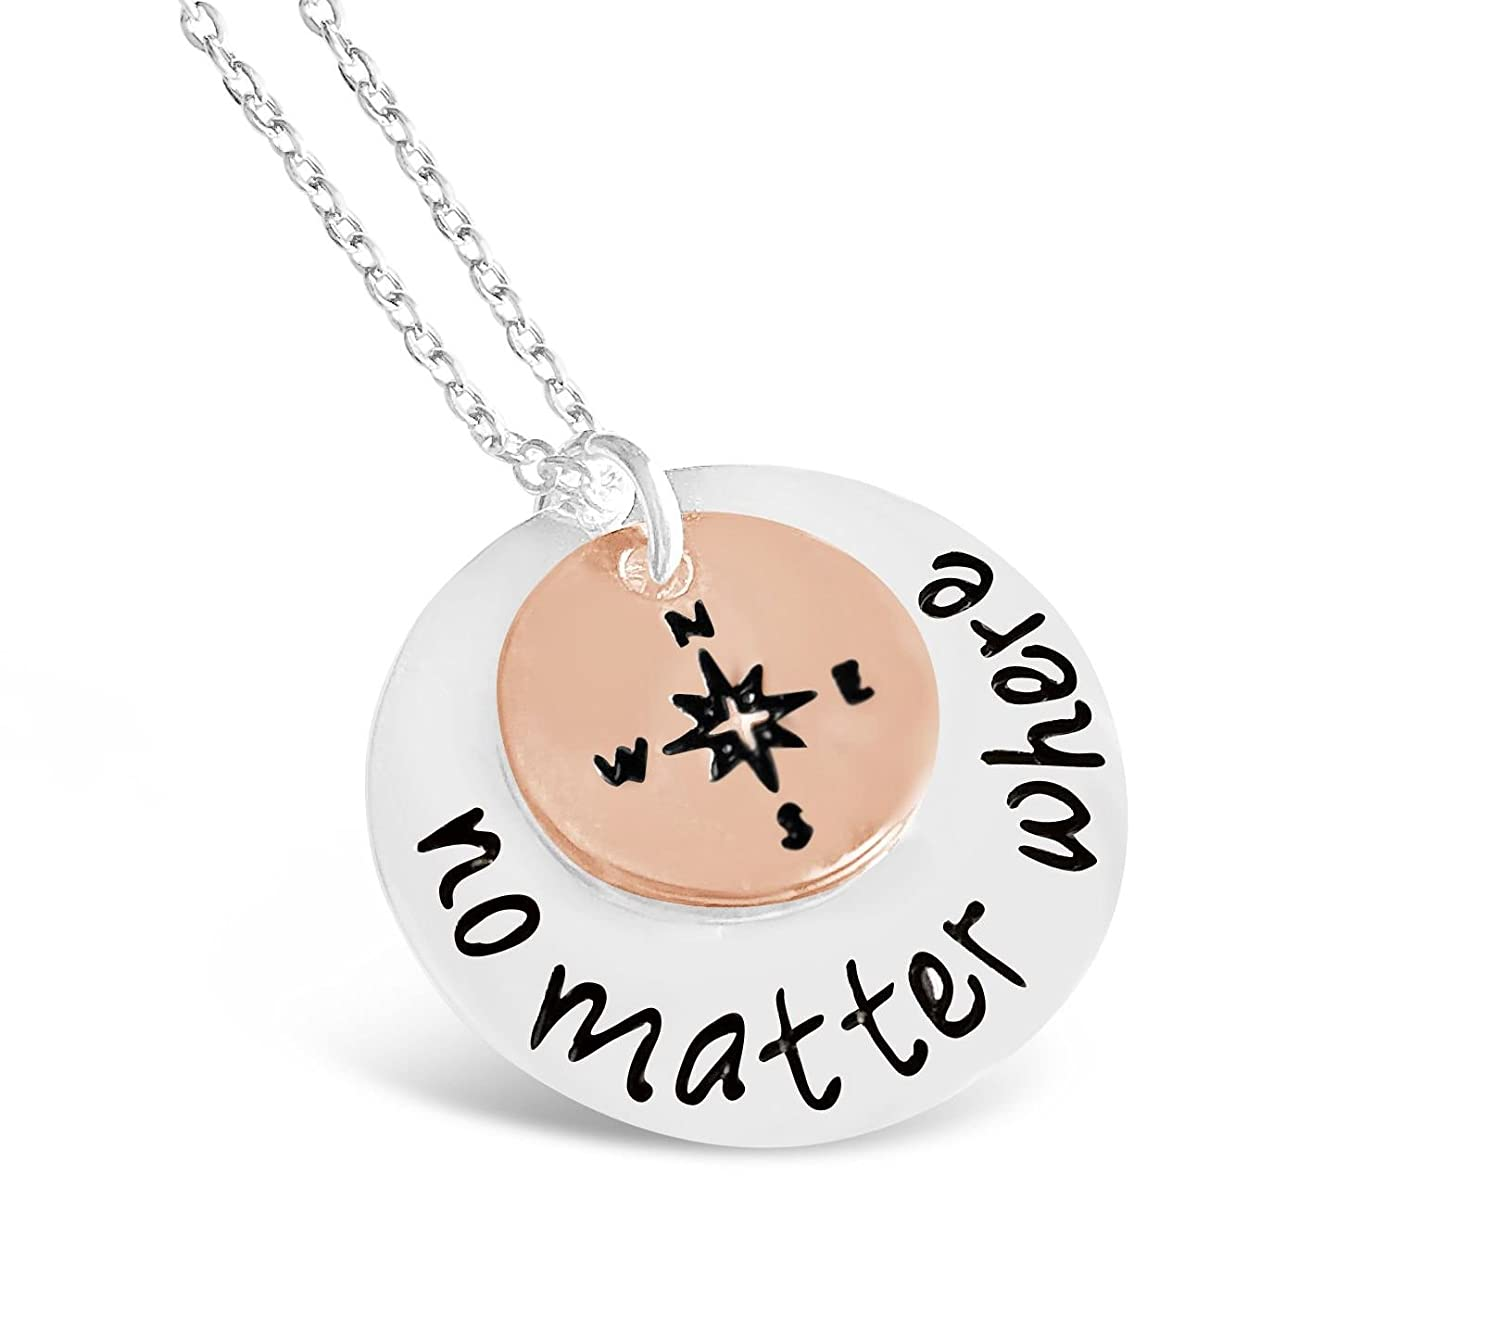 Rosa Vila No Matter Where Compass Necklace, Long Distance Friendship Necklace, Compass Necklace for Women, Cousin Gifts, Compass Jewelry for Women, Best Friends Necklaces